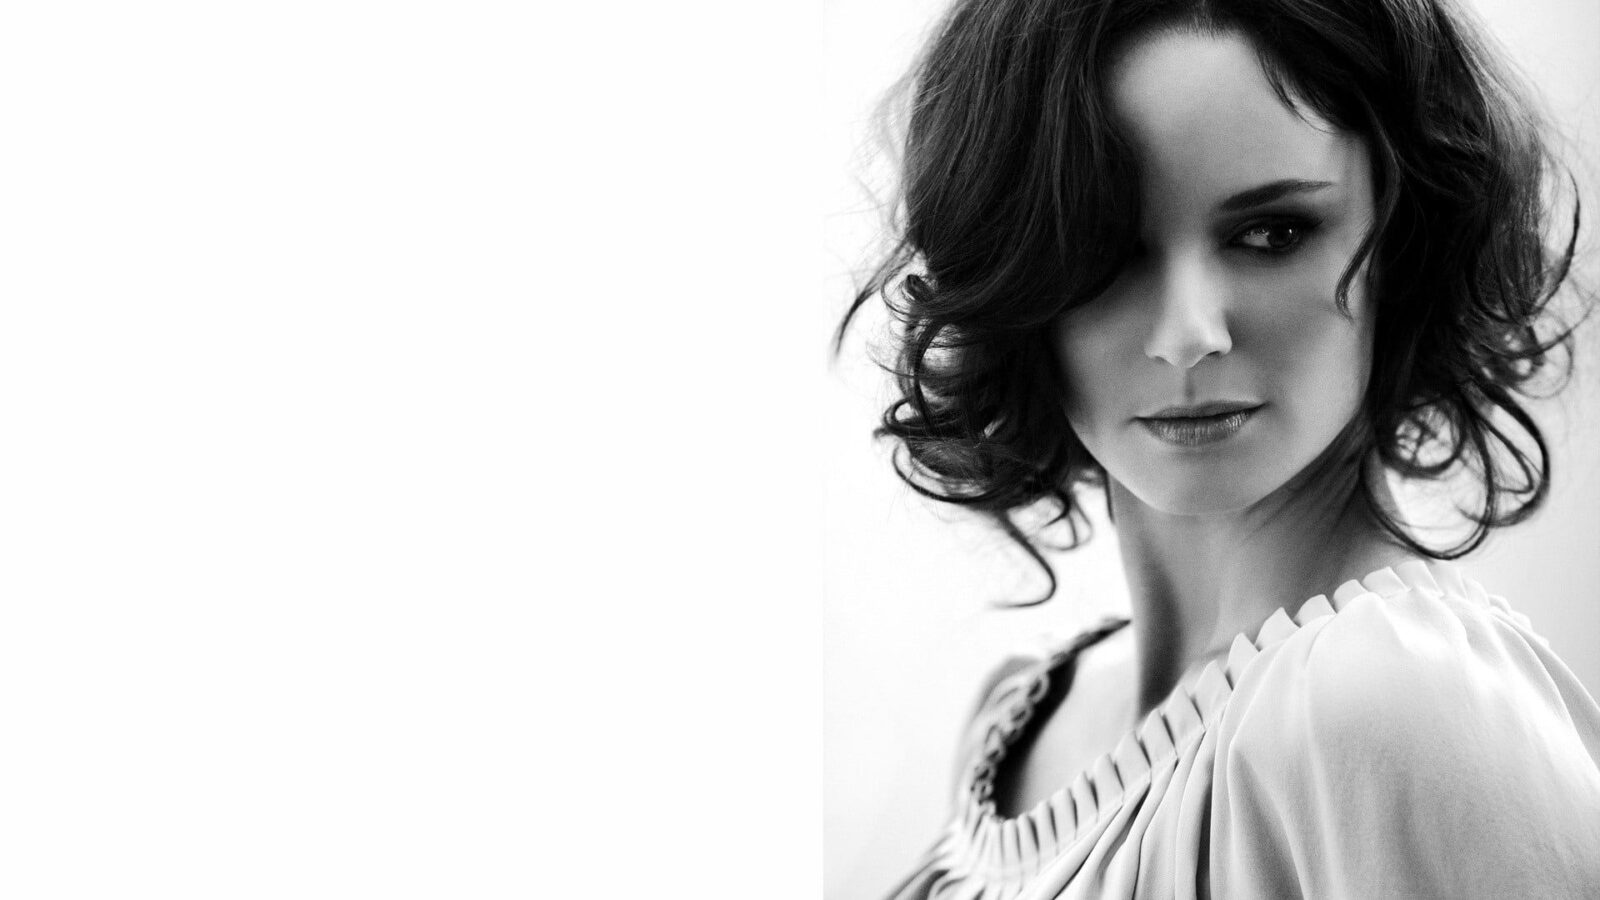 Sarah Wayne Callies bw background